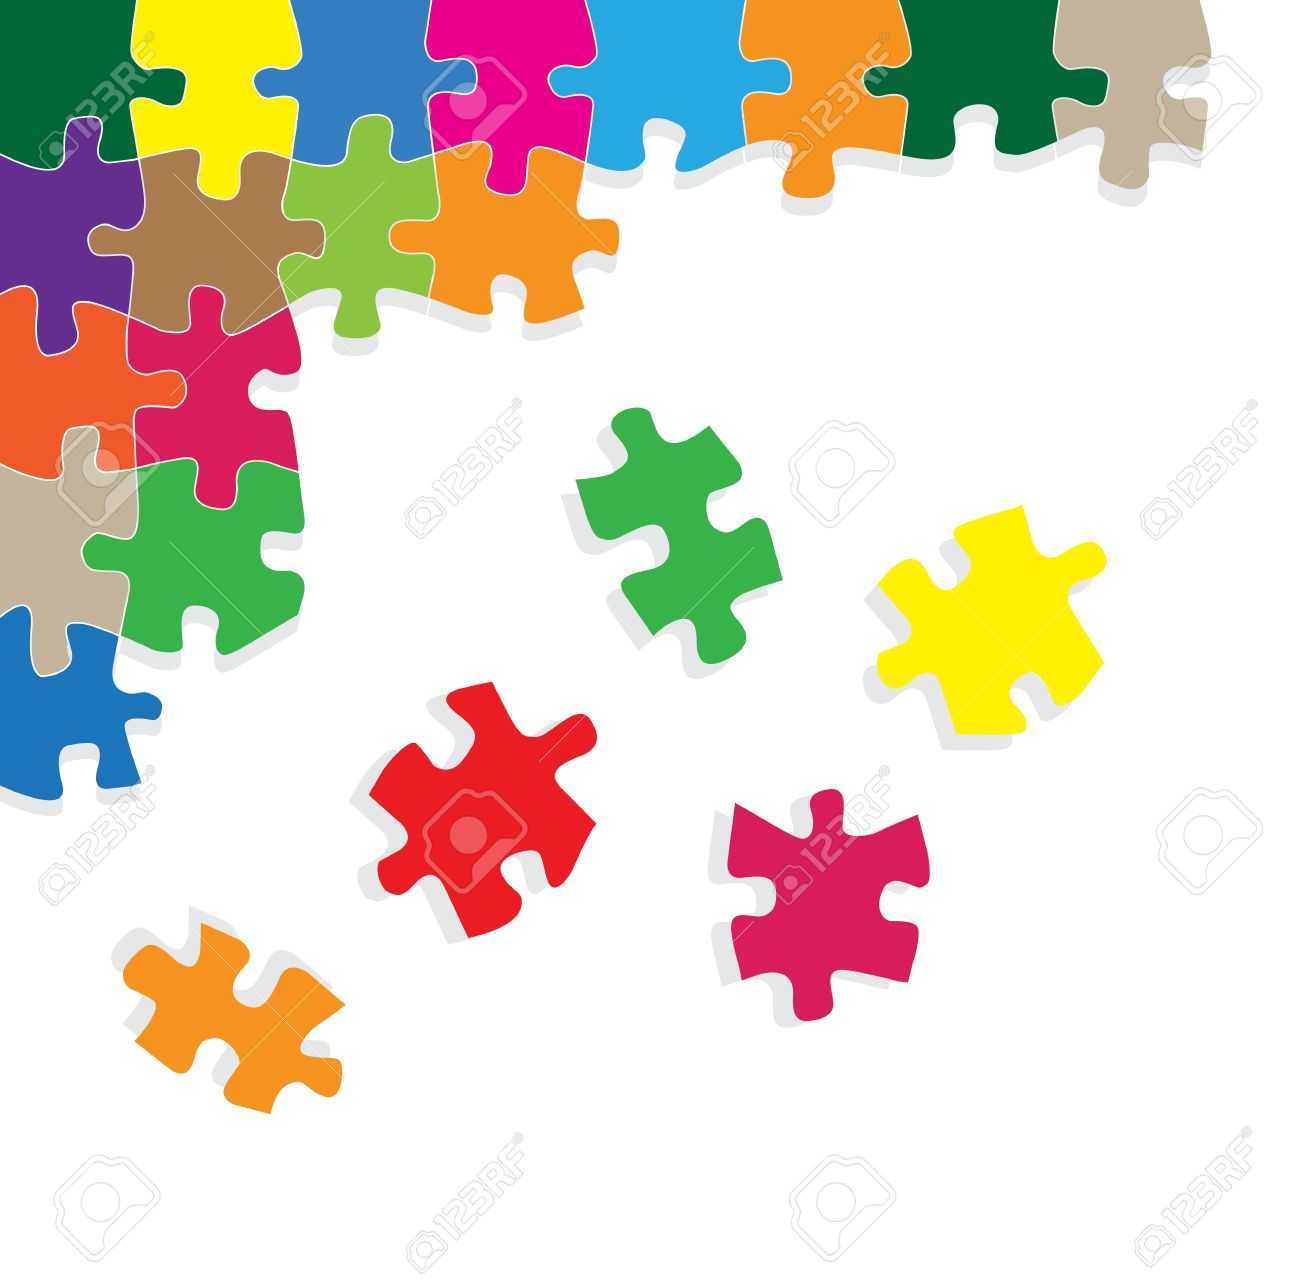 Colorful jigsaw puzzle background for poster Stock Vector - 13412305